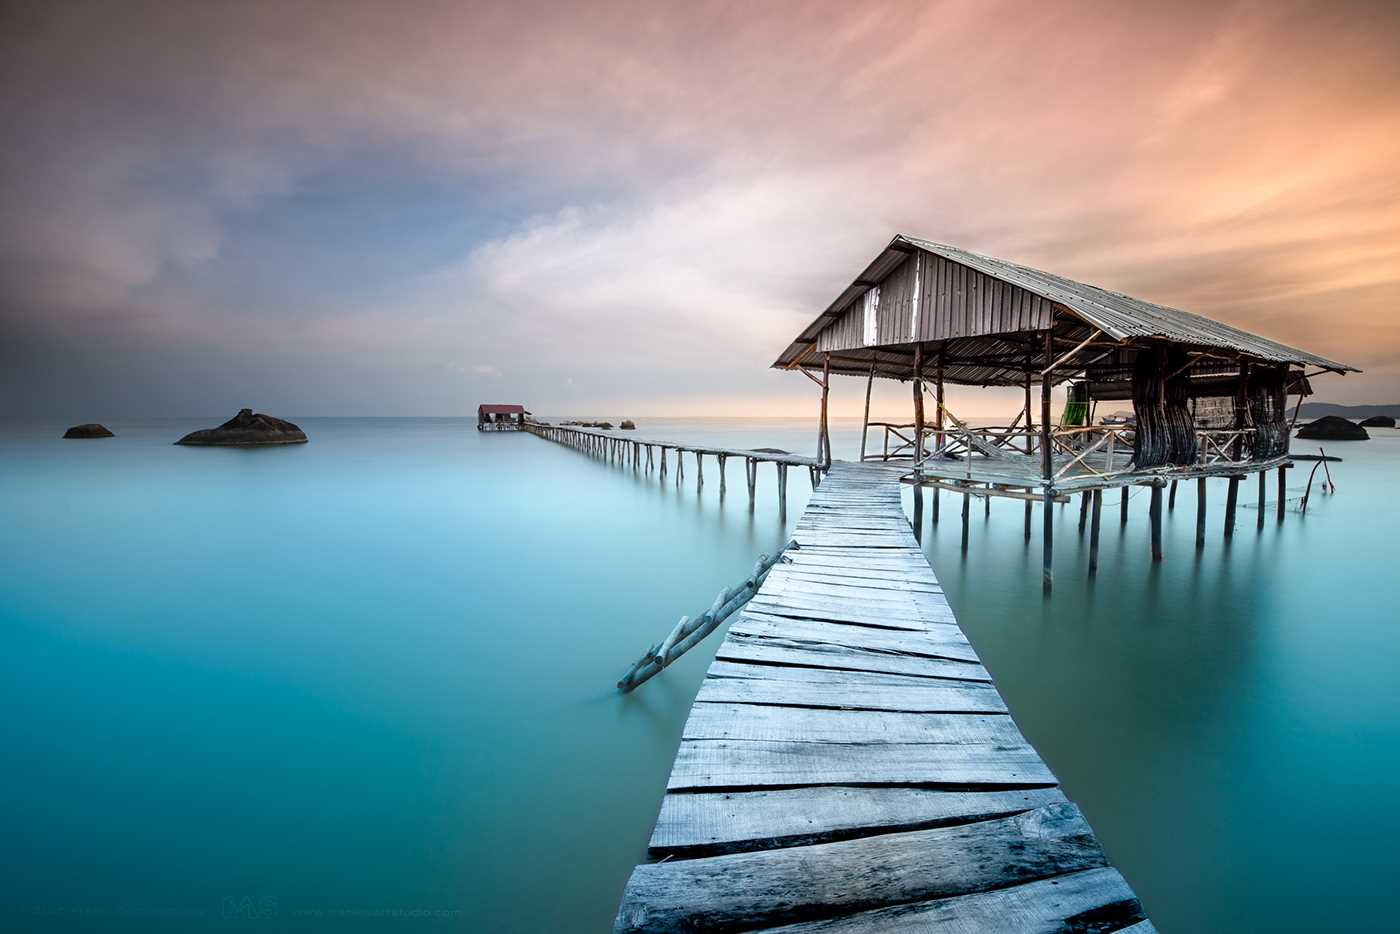 Tranquility at Sea Minimalist Seascape Photography by